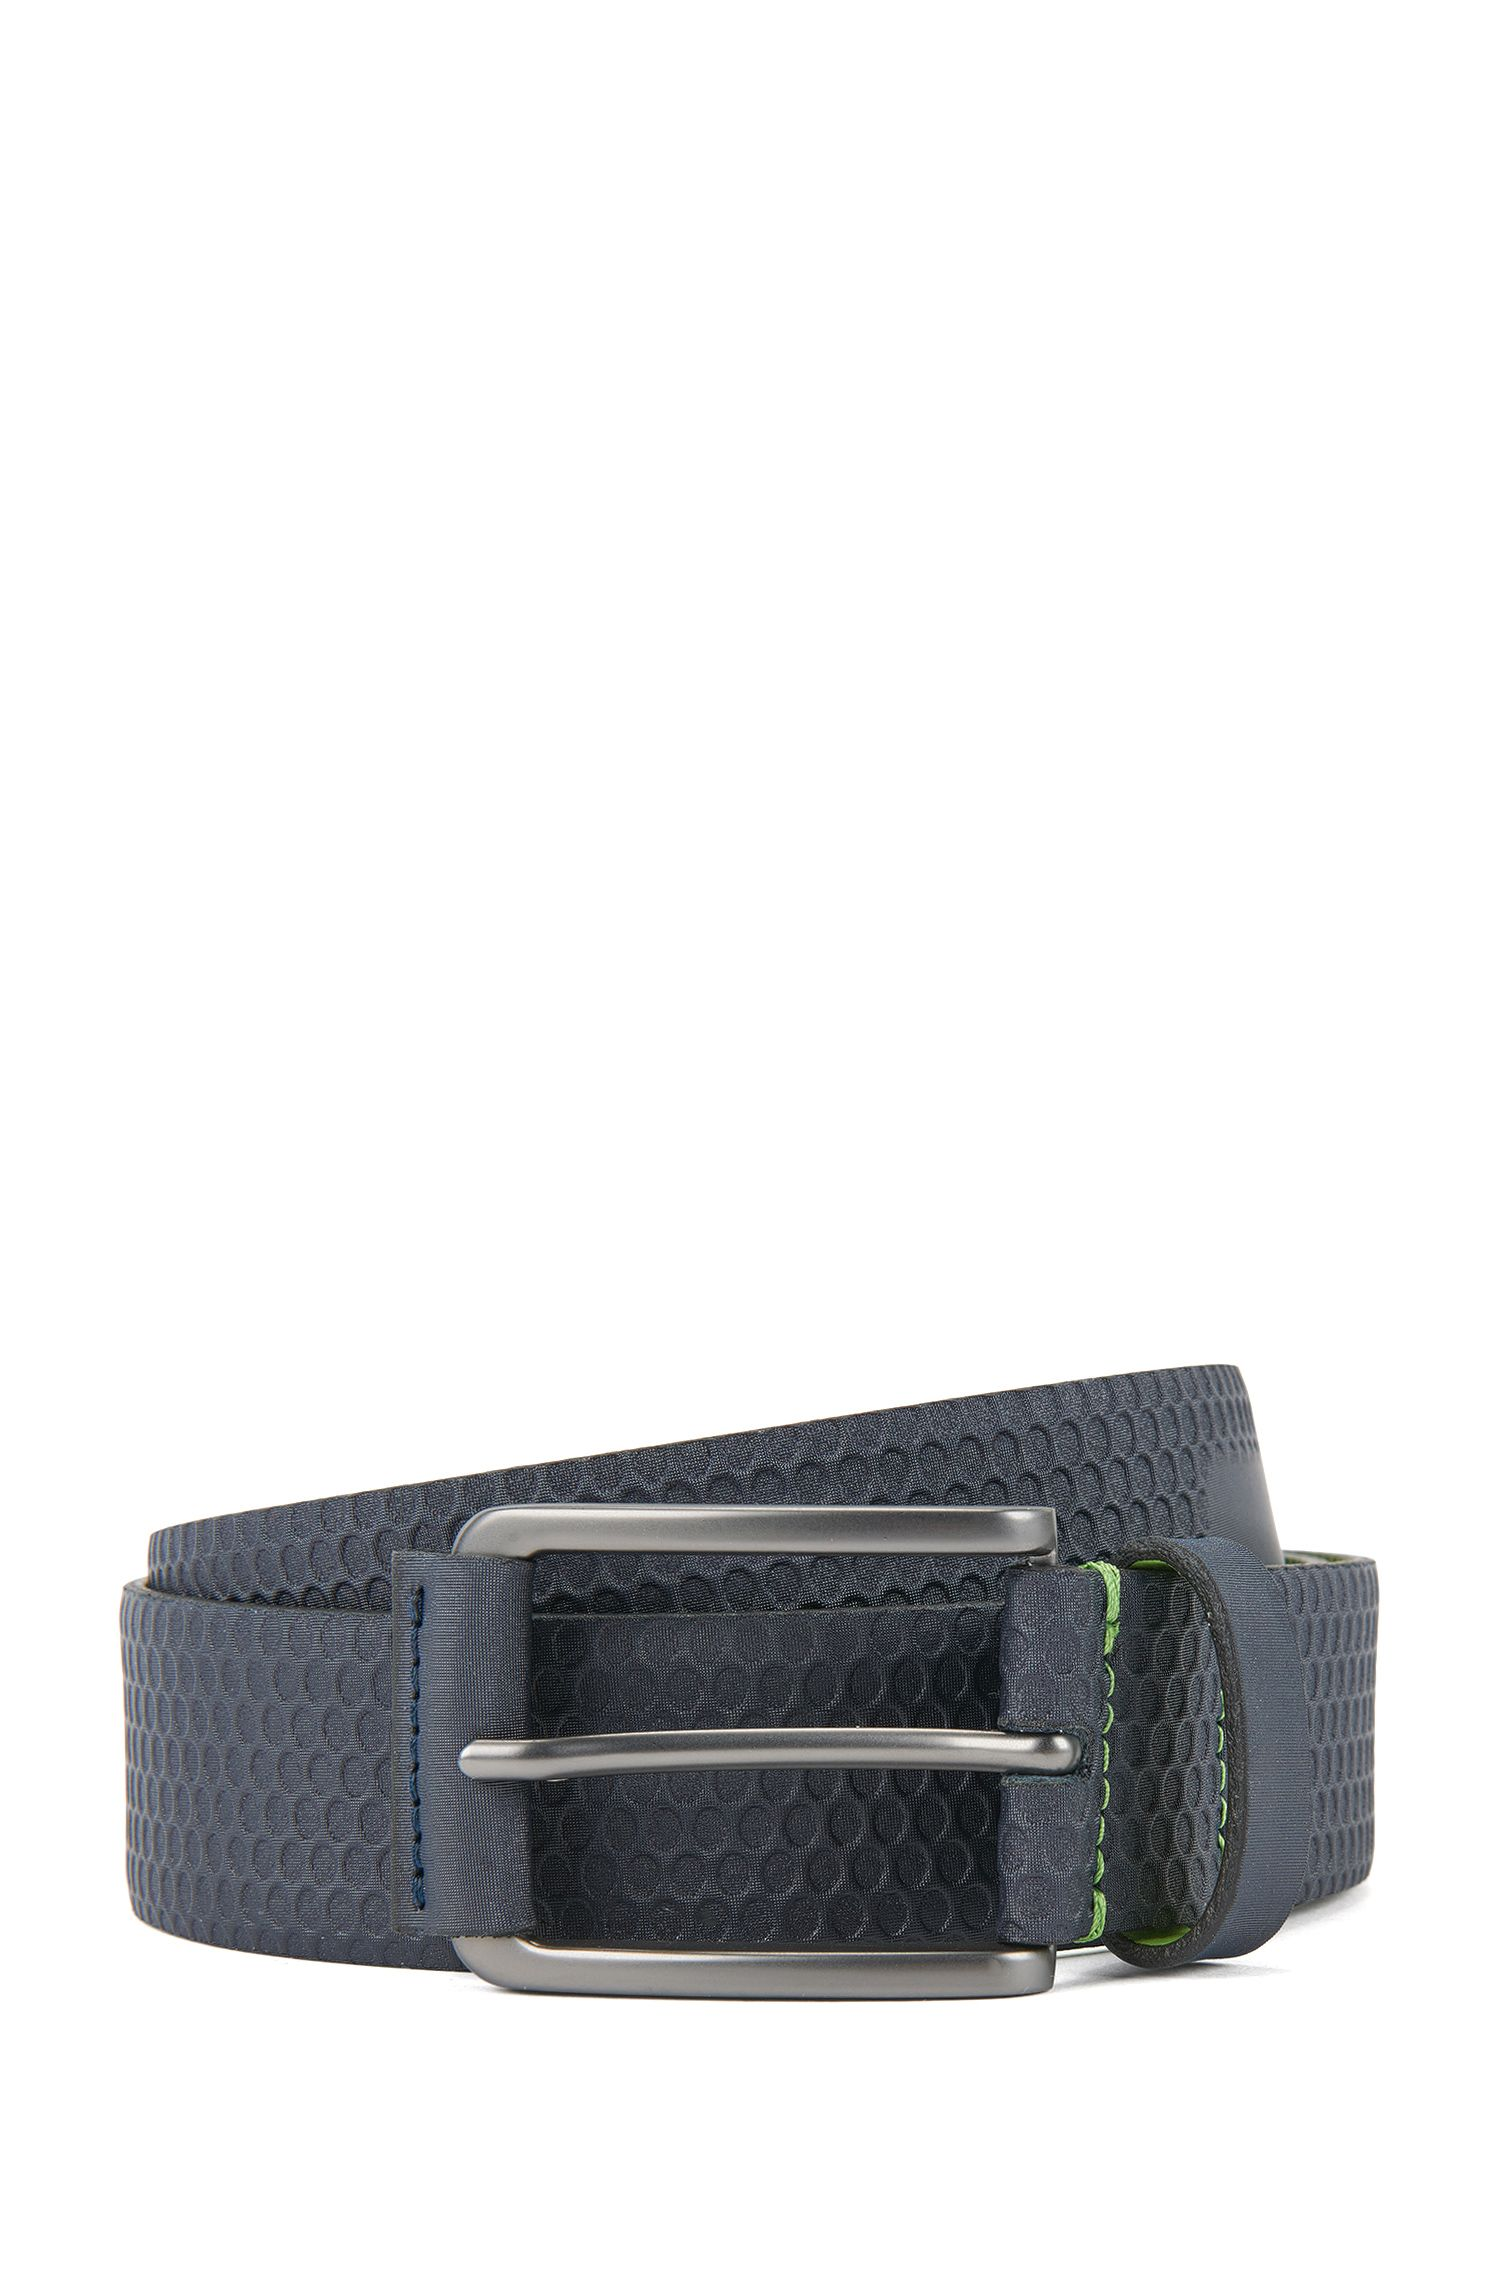 Debossed Leather Belt | Tosco Sz35